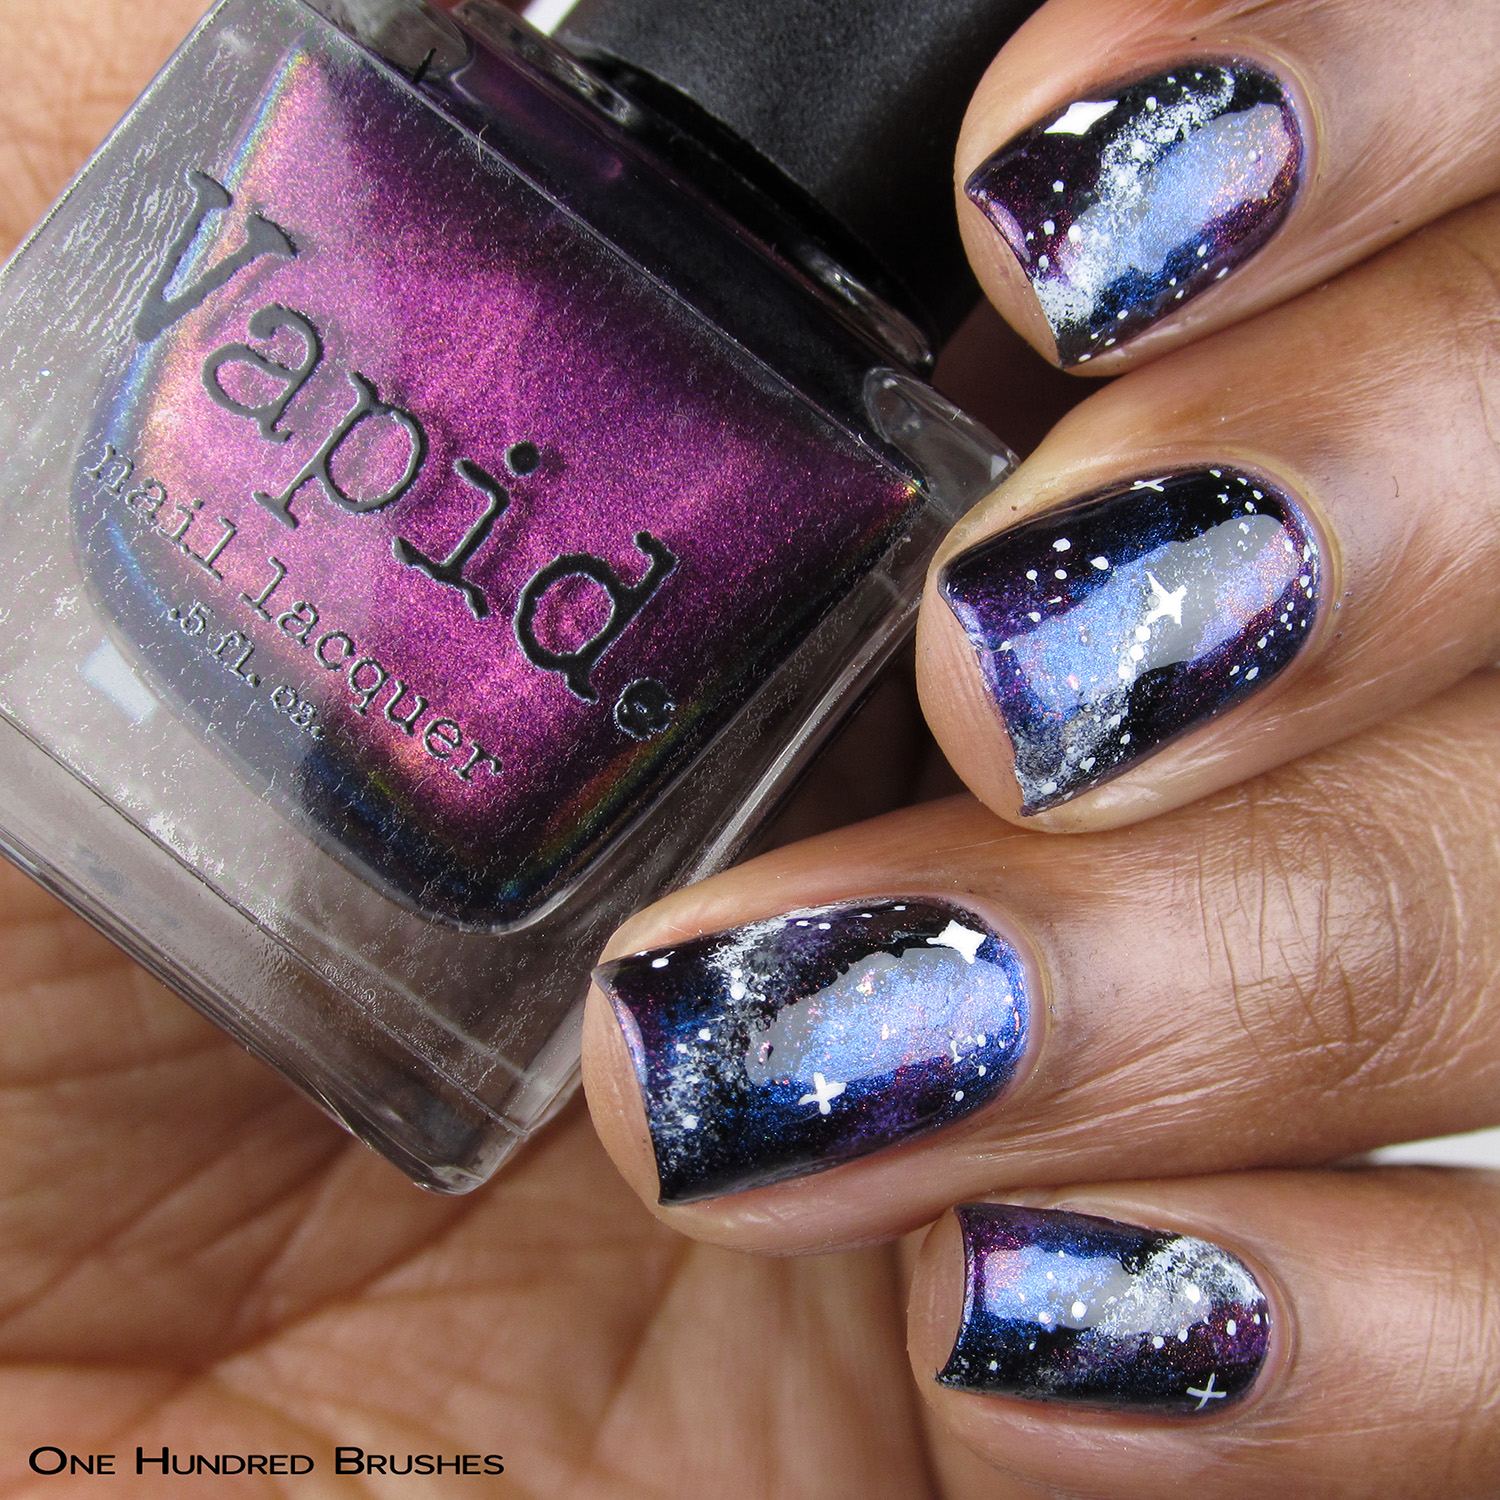 A Little Mad Galaxy (nail art) - Vapid Lacquer - January 2019 Preorder